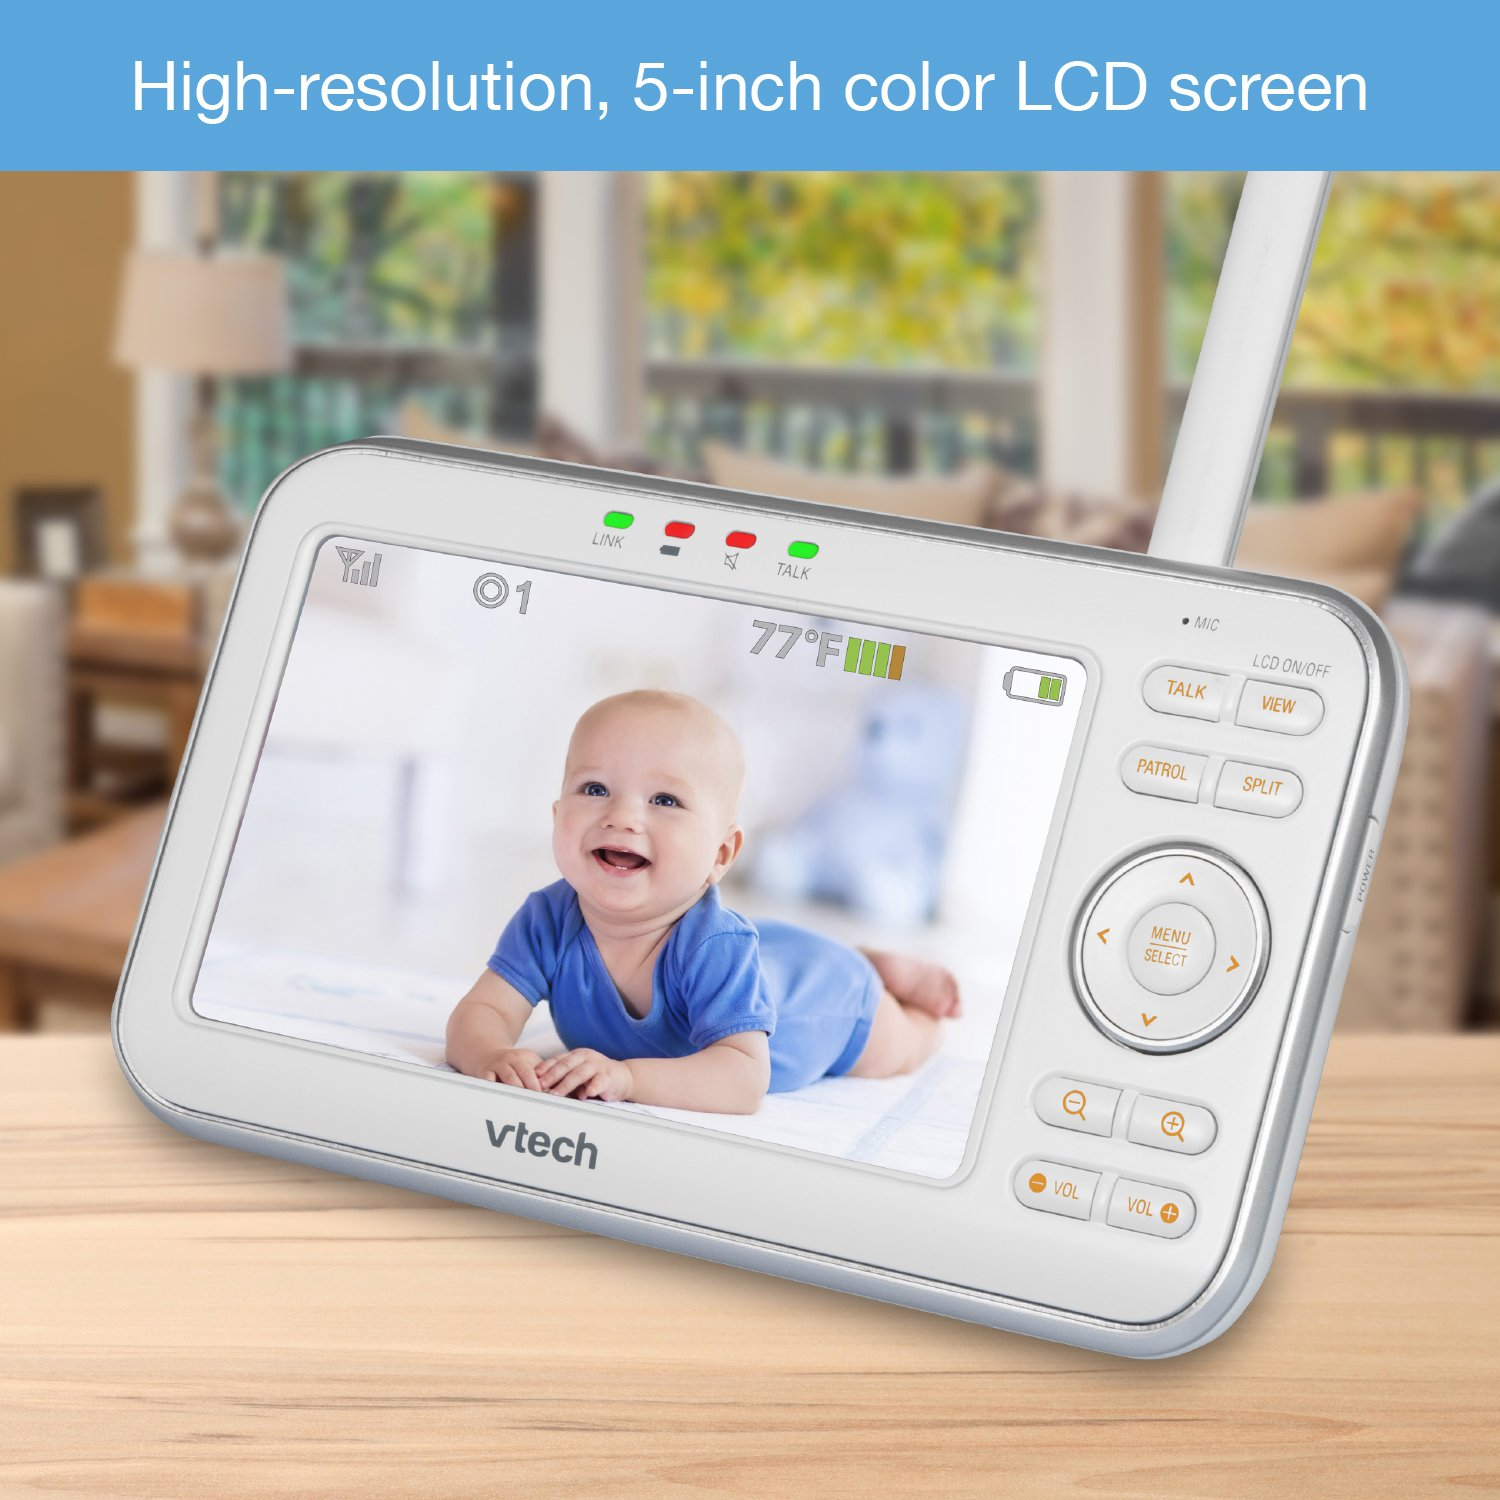 VTech VM5271-2 Video Baby Monitor with 5-inch Screen, Motorized Lens with 6x Optical Zoom, Soothing Sounds & Lullabies, Temperature Sensor & 1,000 feet of Range with 2 Cameras by VTech (Image #3)